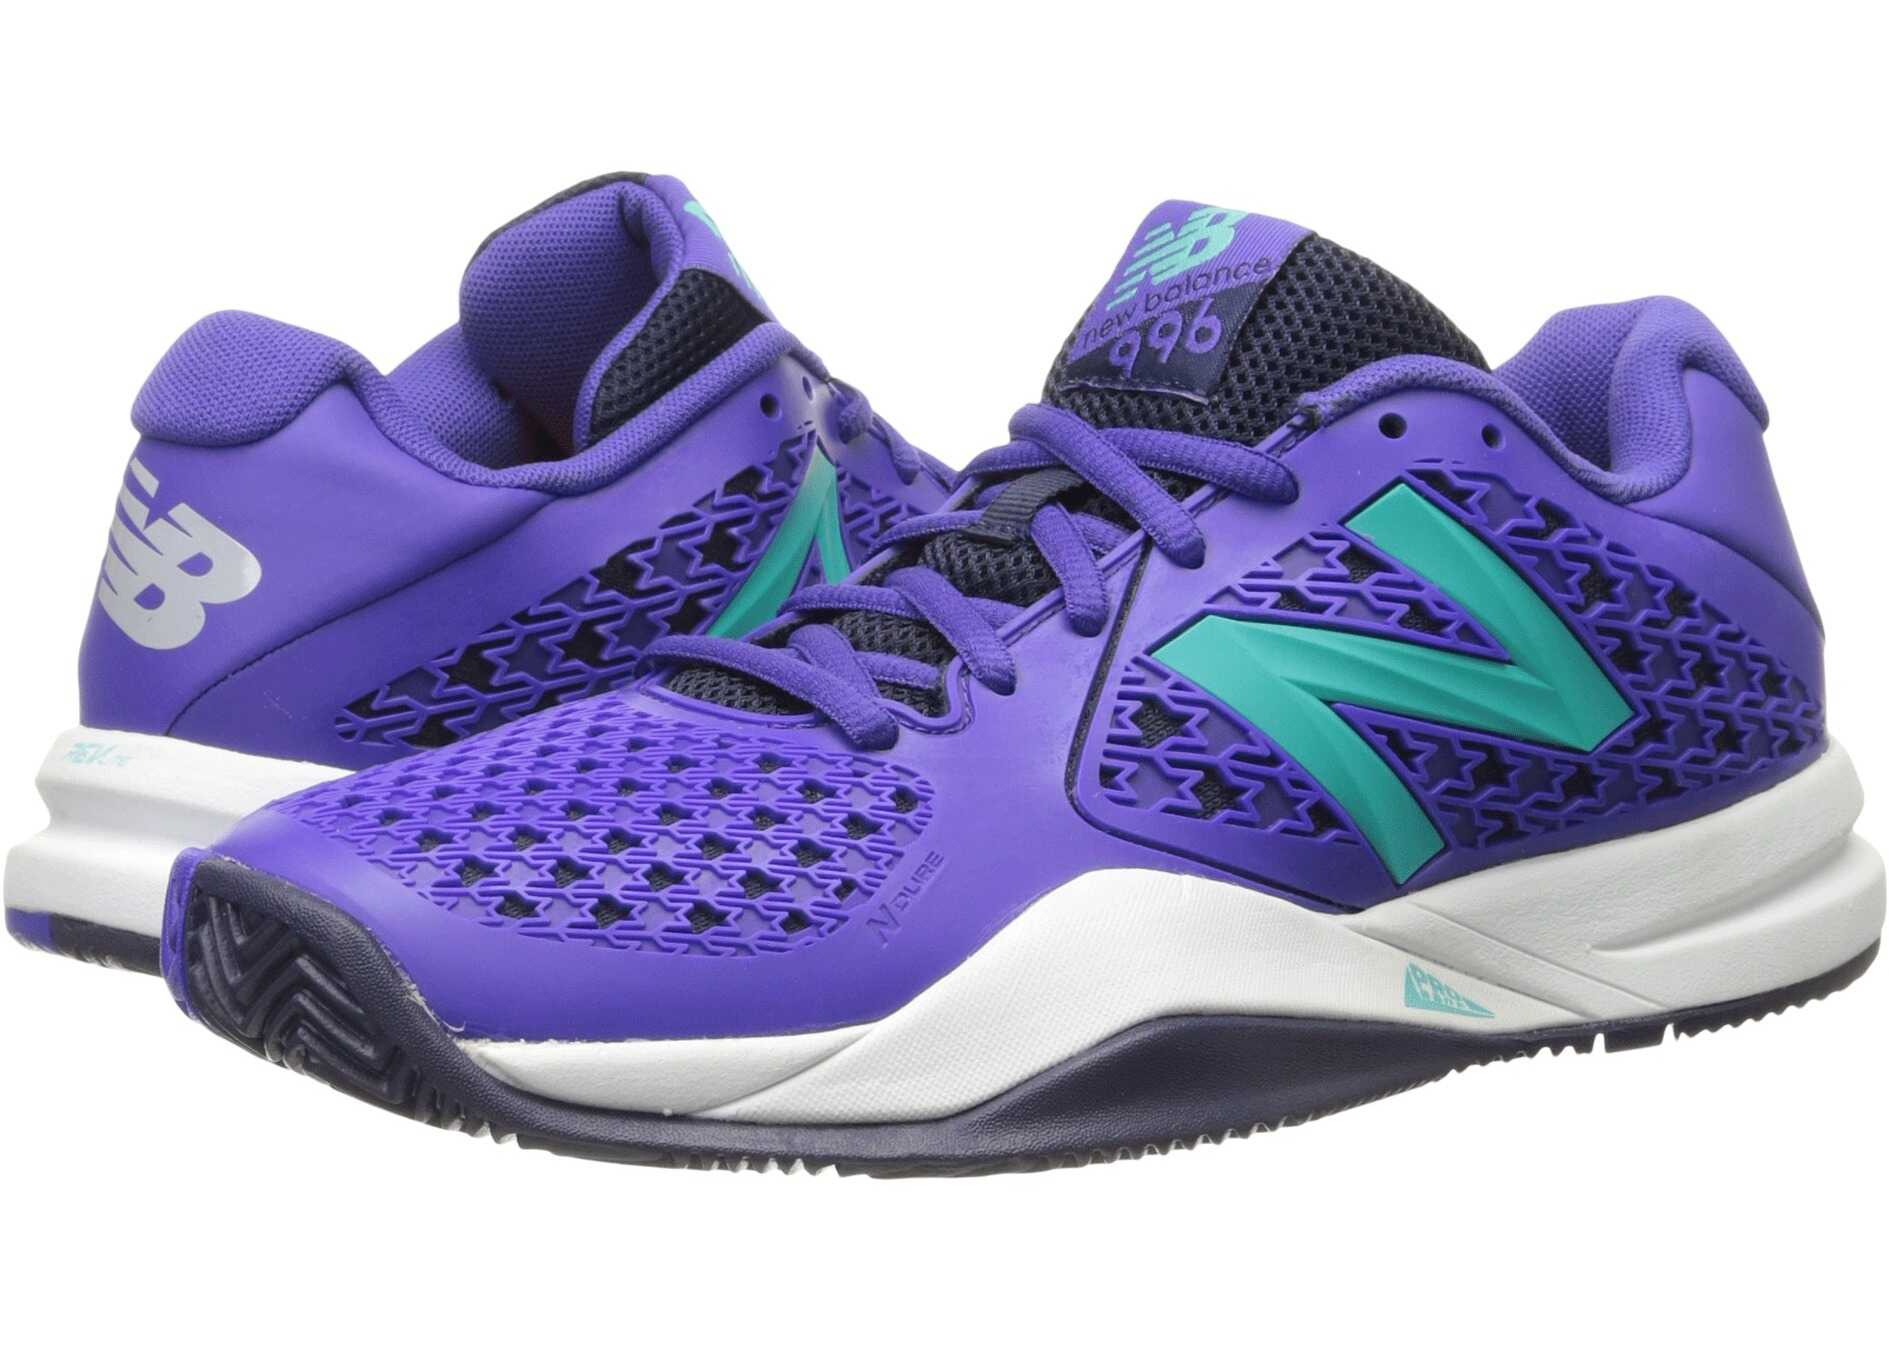 New Balance WC996v2 Purple